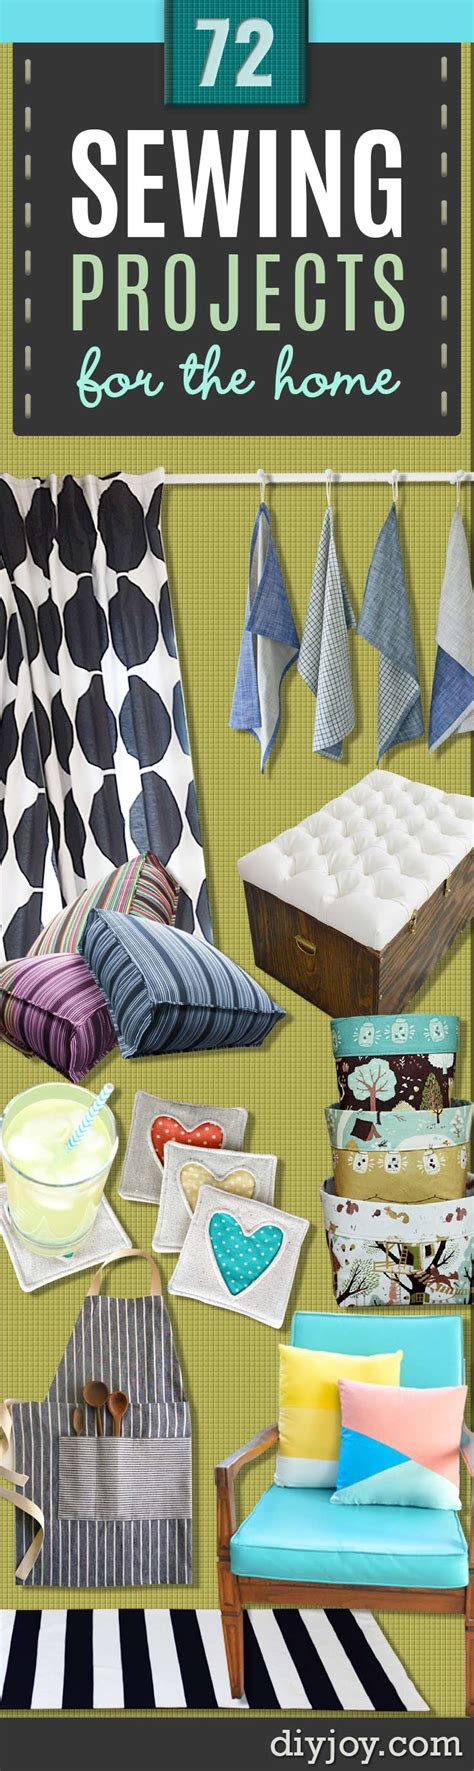 diy decorations sewing 72 crafty sewing projects for the home